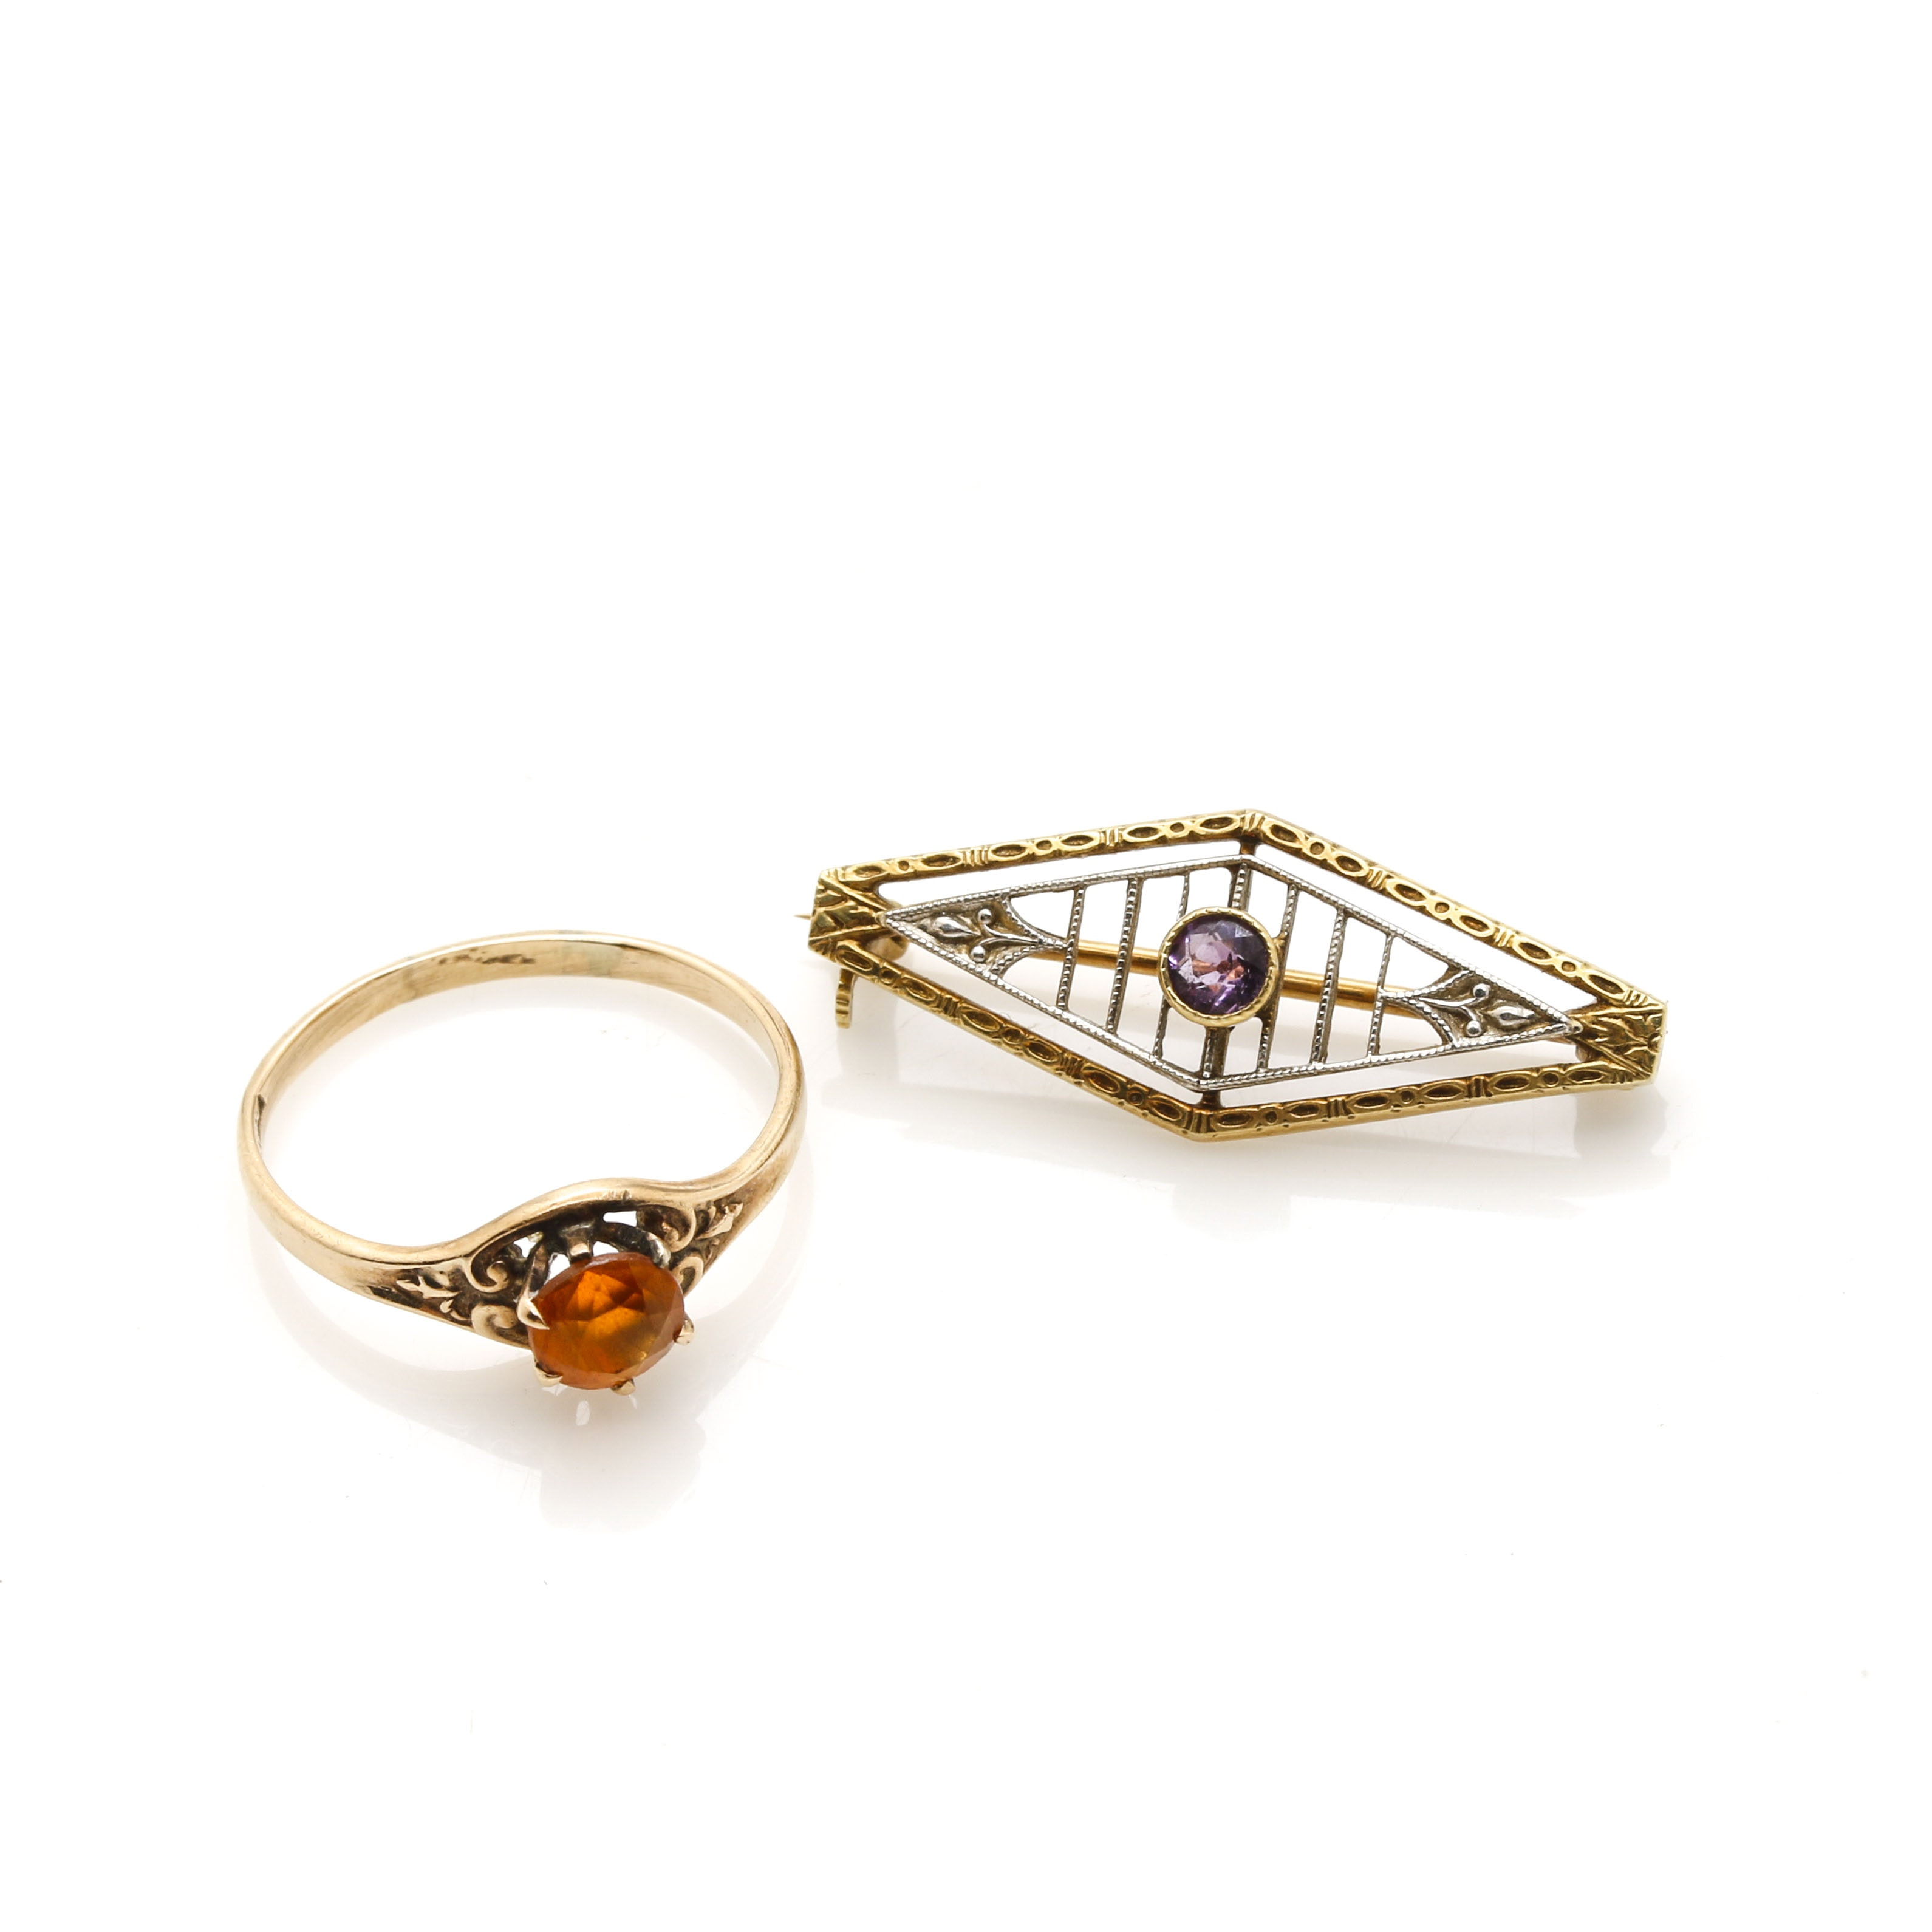 14K Yellow Gold Amethyst Brooch and 10K Yellow Gold Citrine Ring